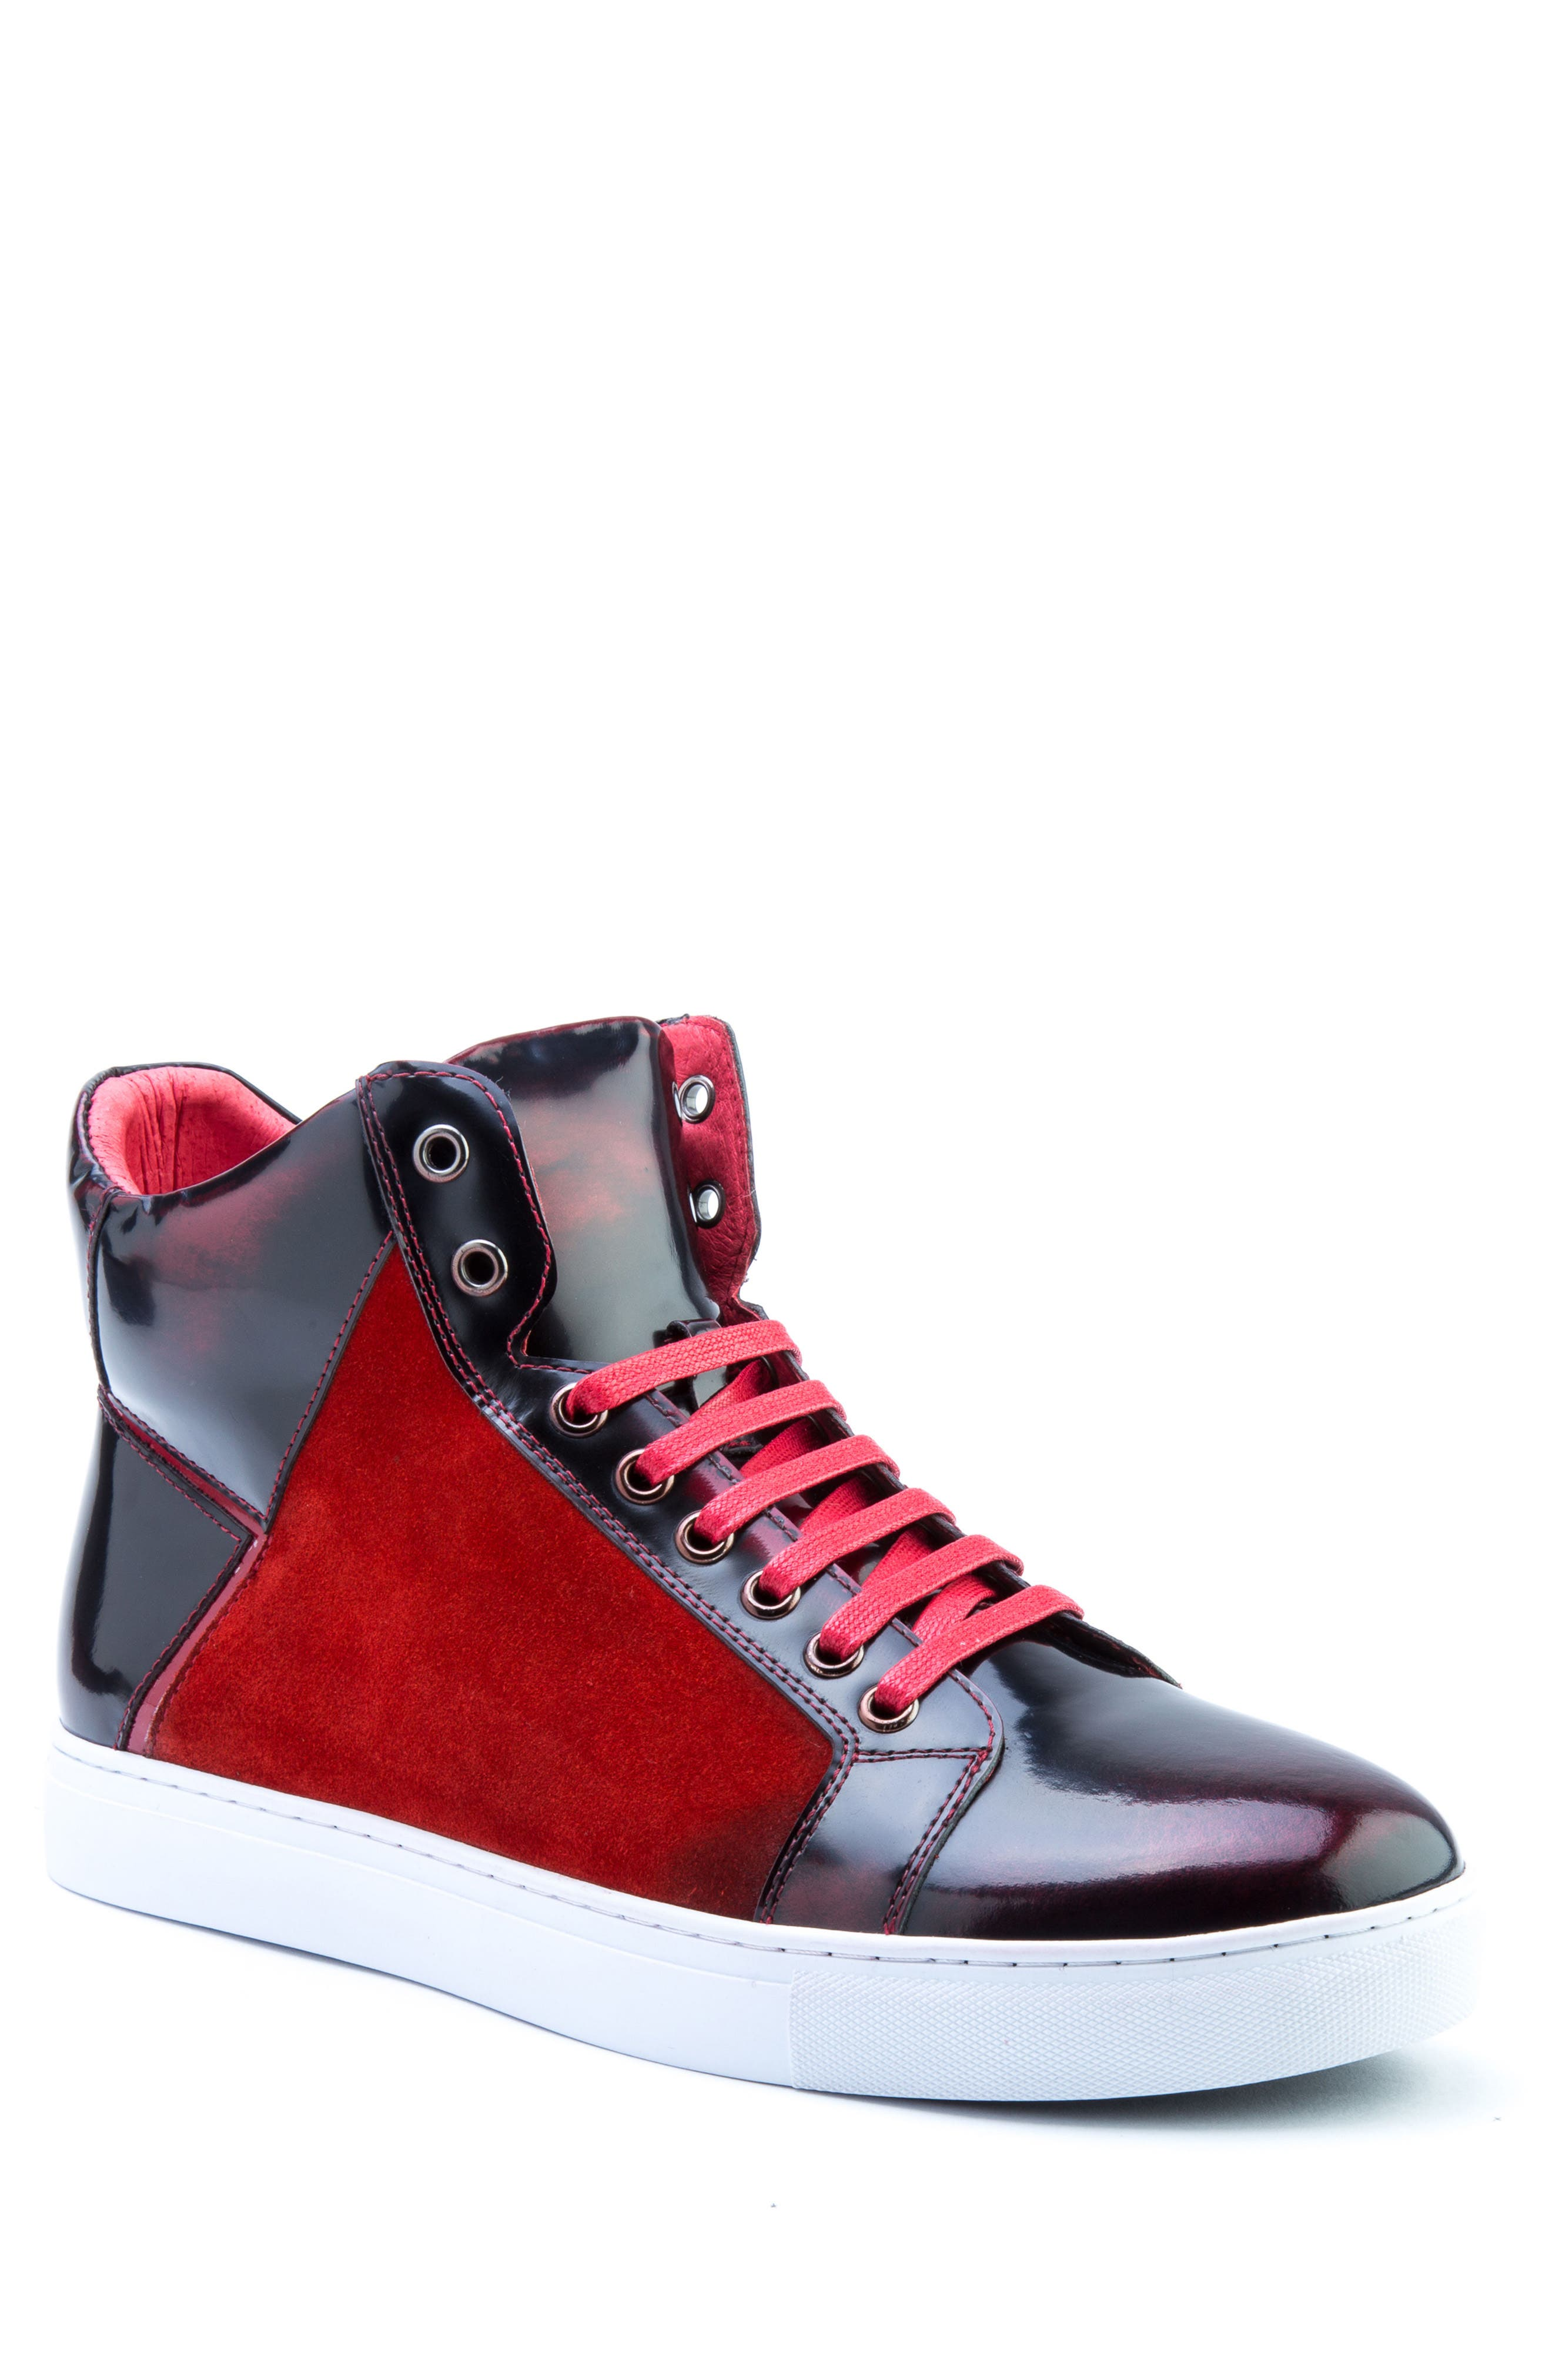 Douglas High Top Sneaker,                             Main thumbnail 1, color,                             RED LEATHER